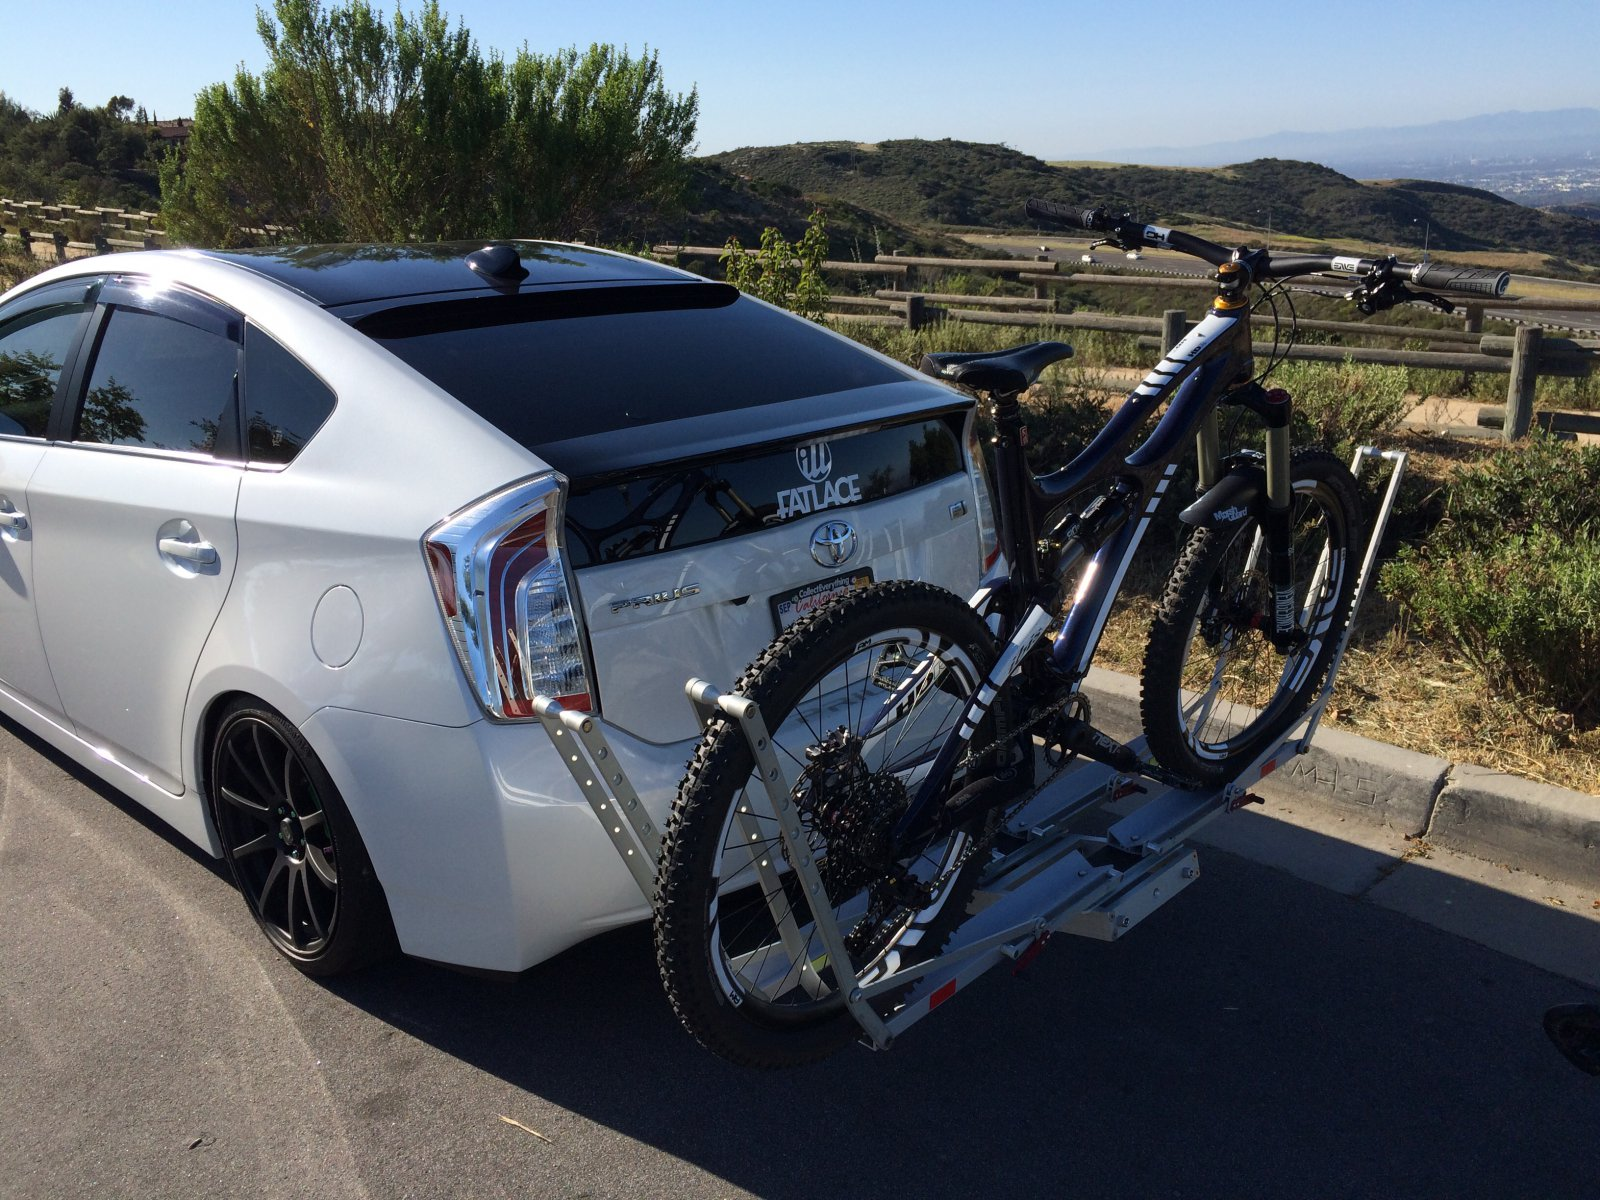 2010 Prius Hitch Receivers And Bike Racks Priuschat